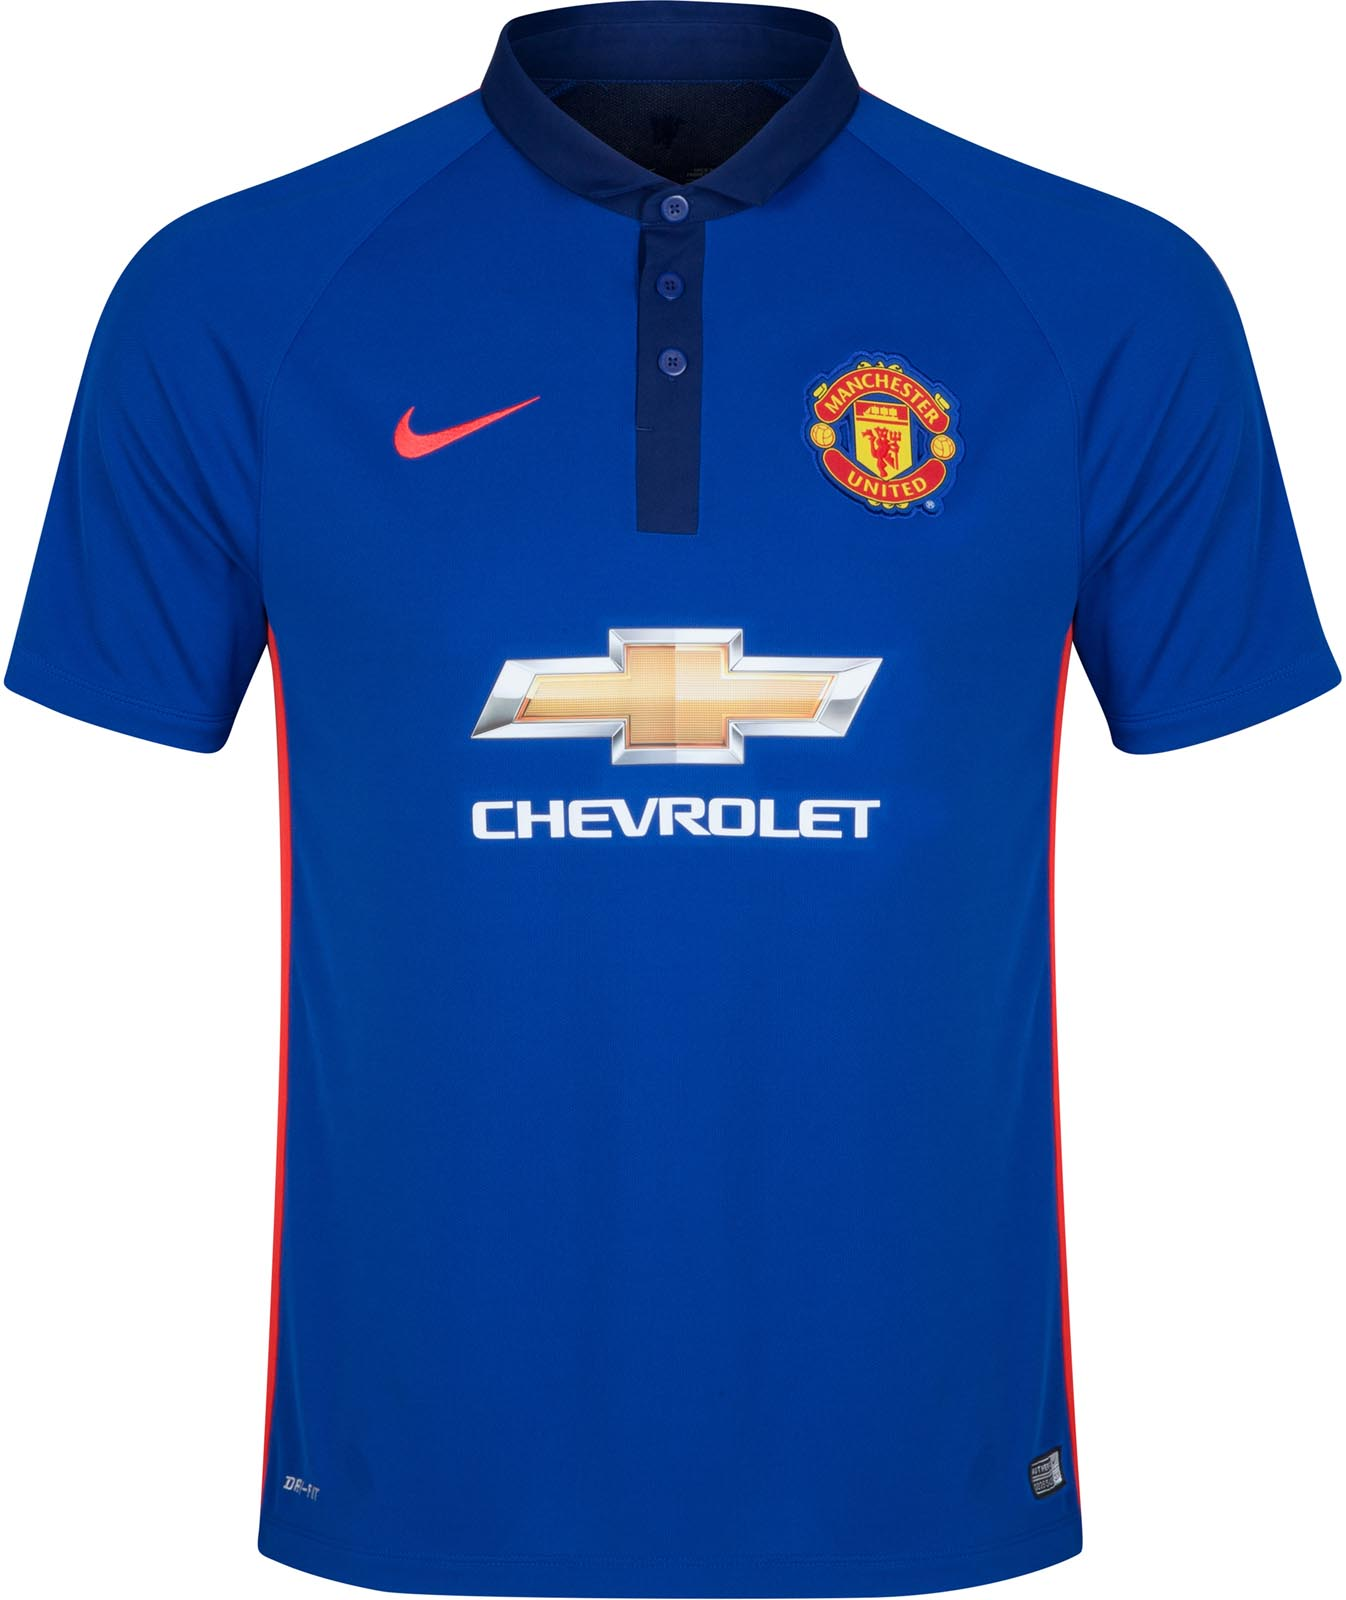 Manchester-United-14-15-Third-Kit+%281%2